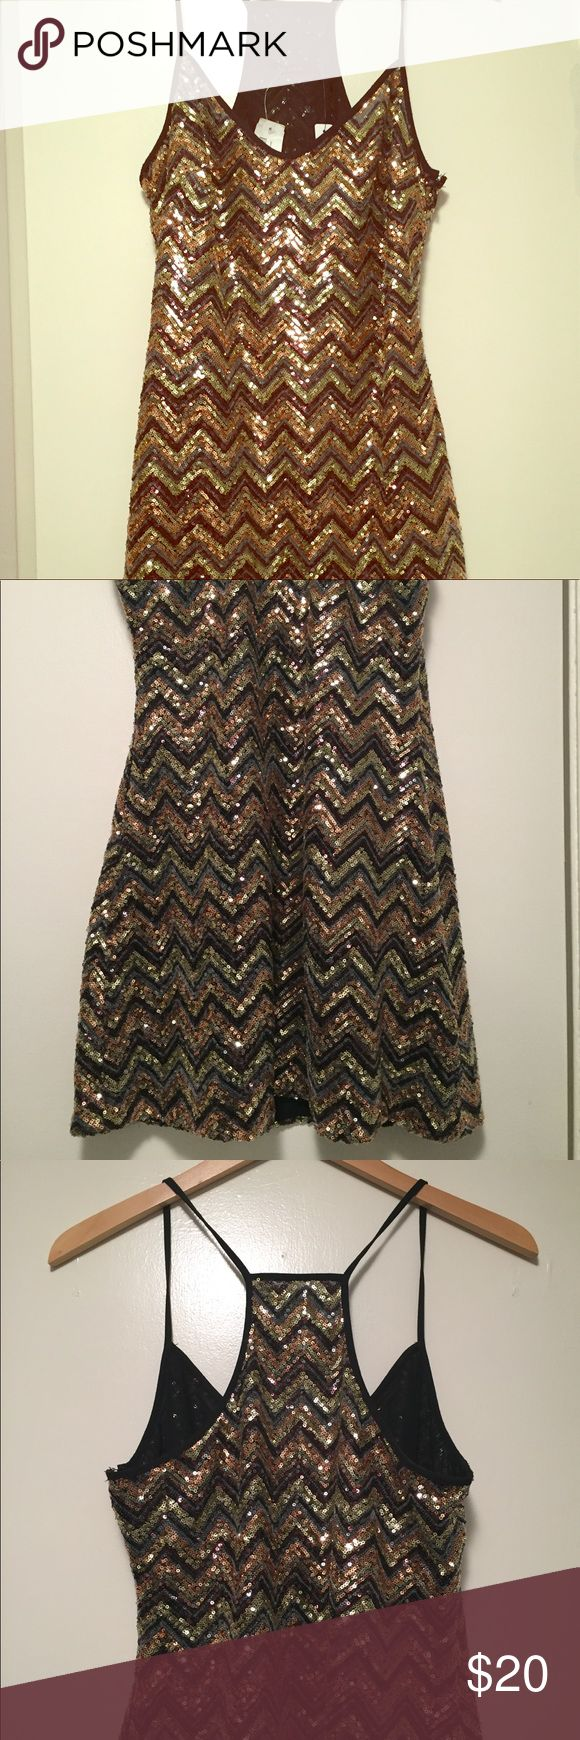 NWT Sequin Bodycon Dress by Ark & Co. Sequin, chevron pattern bodycon by Ark & Co. NWT. Size S. Gold and bronze tones. Spaghetti strap racerback style. Never worn, like new condition. First and last pics show truest colors. Ark & Co Dresses Mini